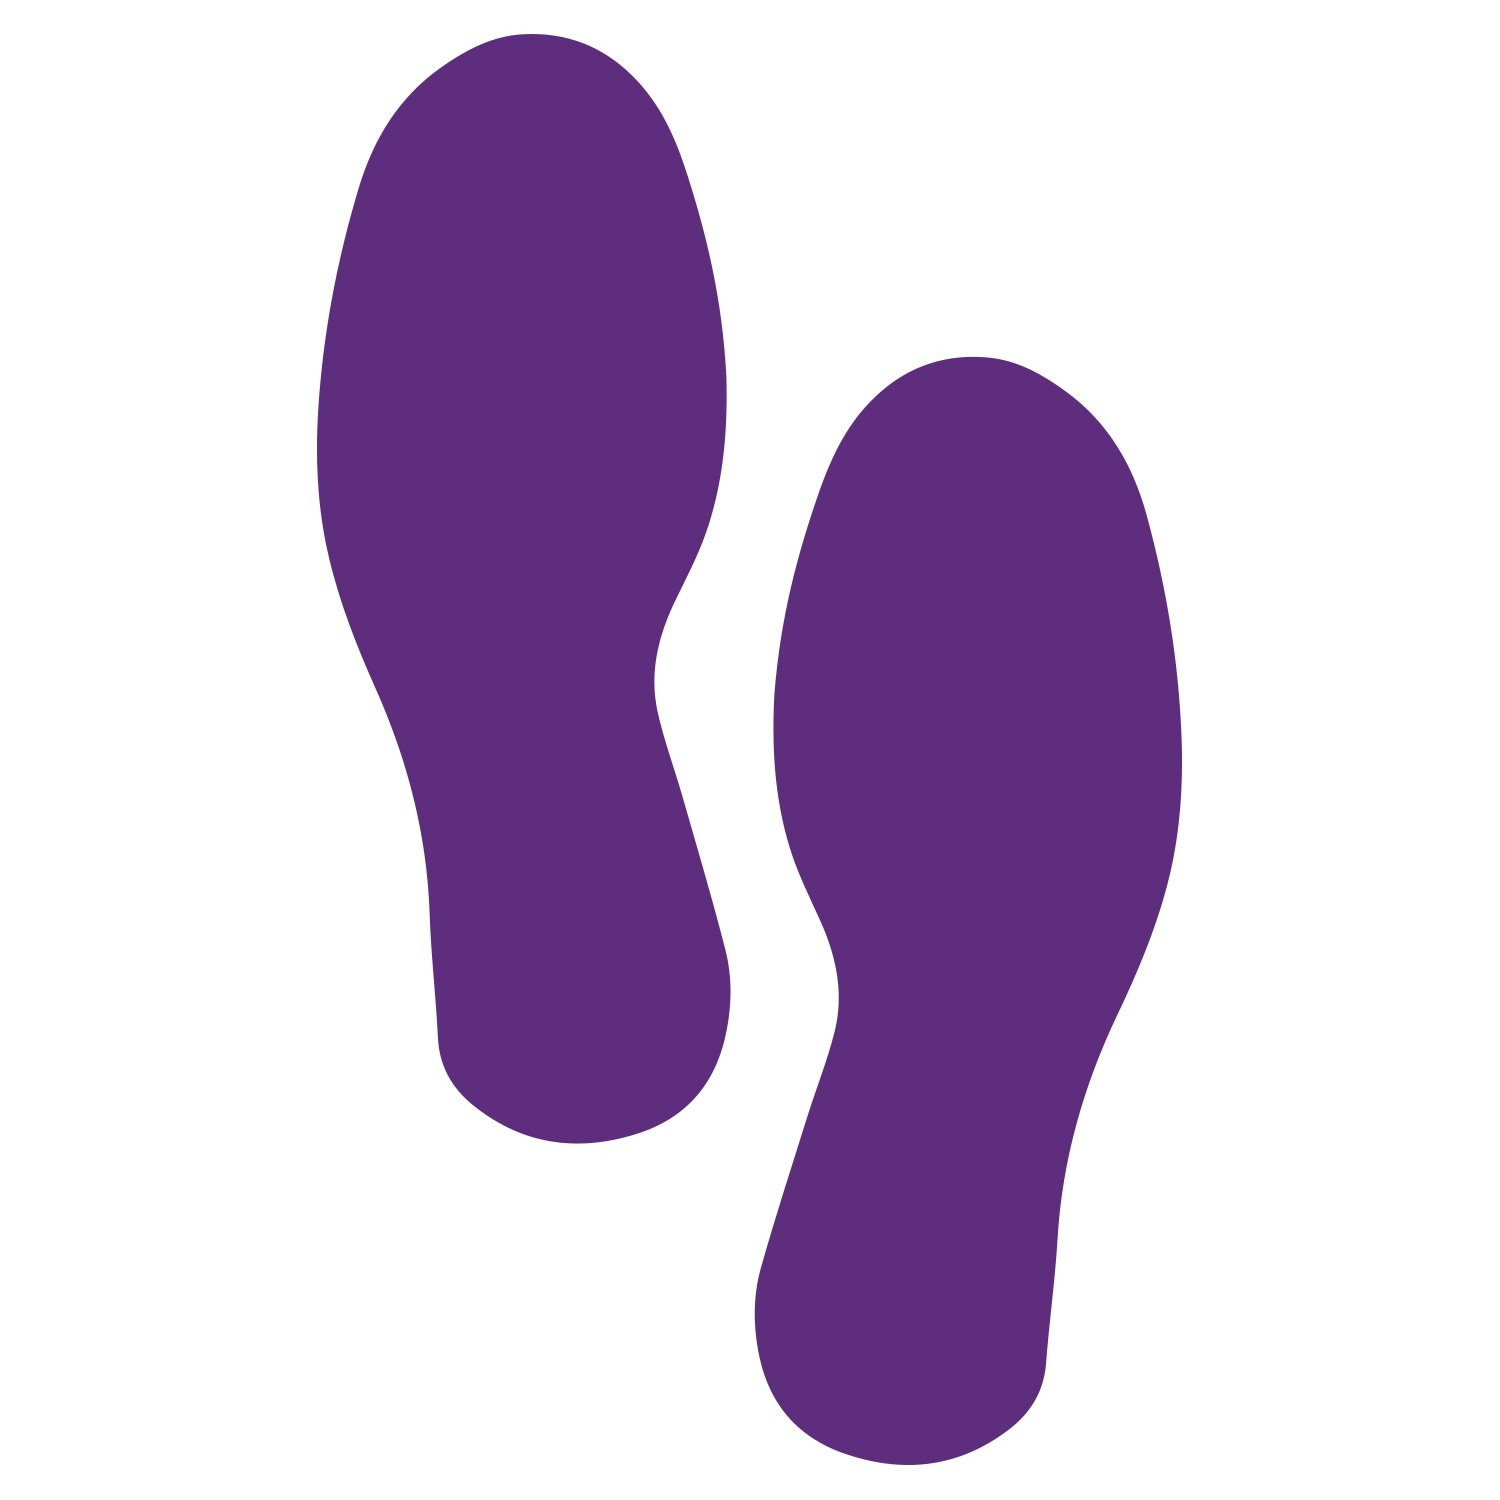 LiteMark 9 Inch Purple Footprint Decal Stickers for Floors and Walls - Pack of 12 (6 Pairs)